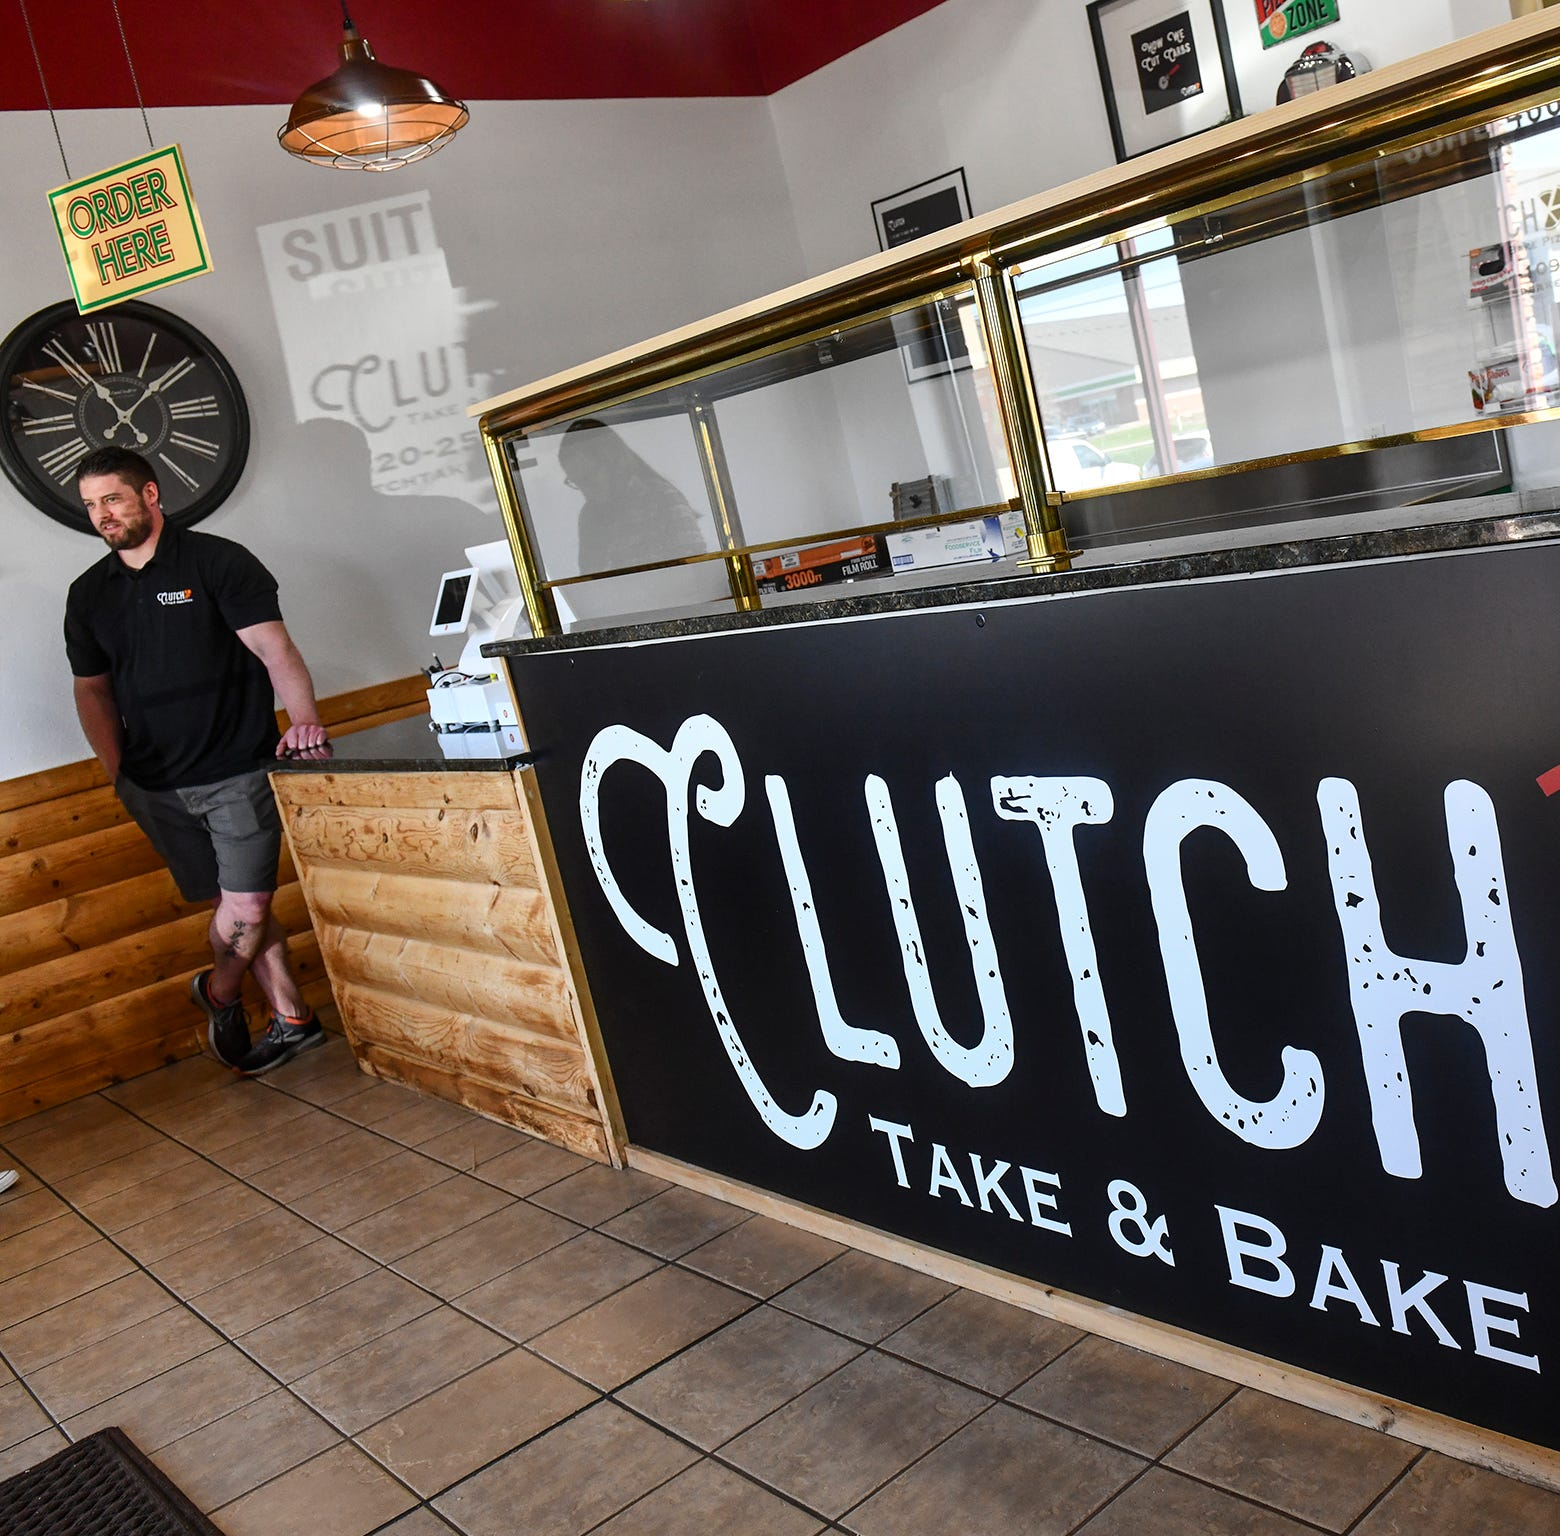 Clutch Take & Bake Pizza coming to Sartell